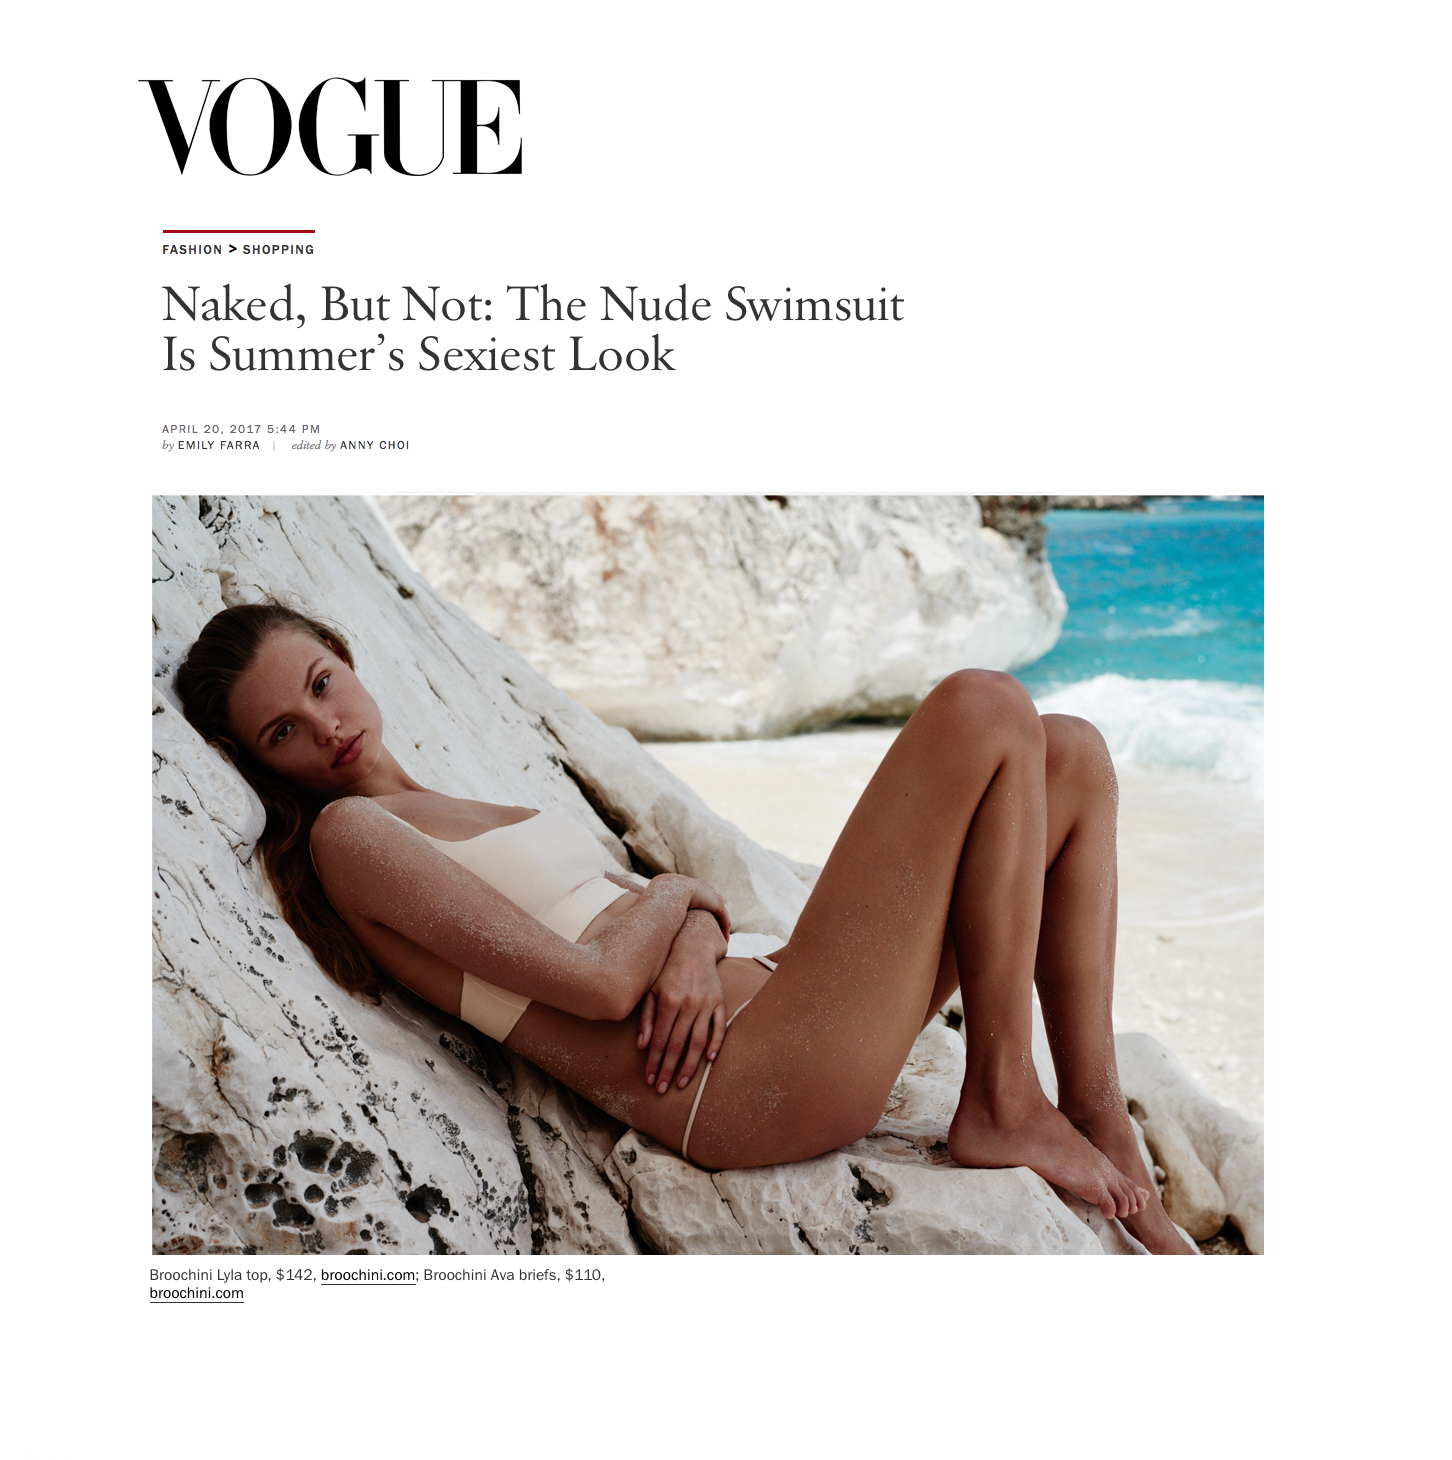 Broochini Vogue US swimwear